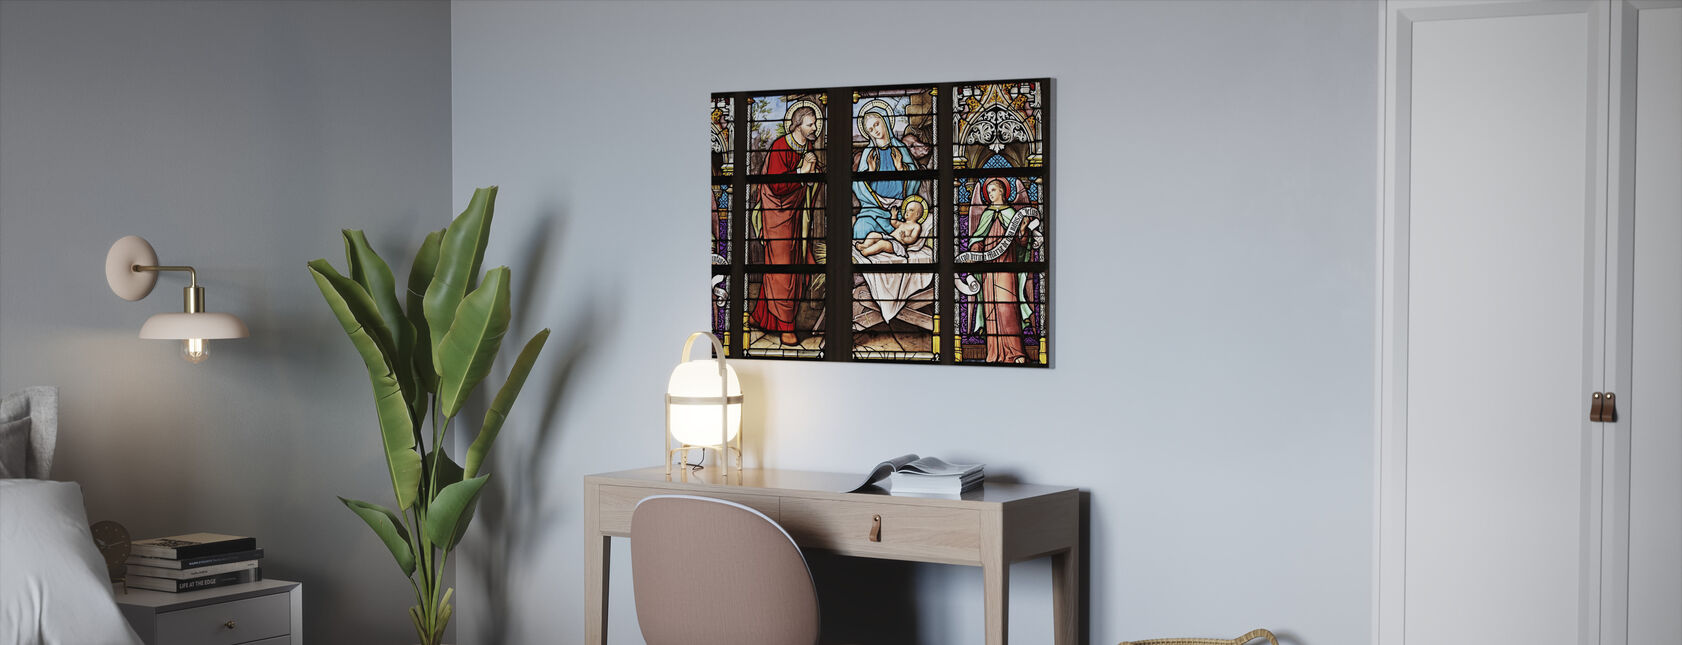 Church Window - Canvas print - Office